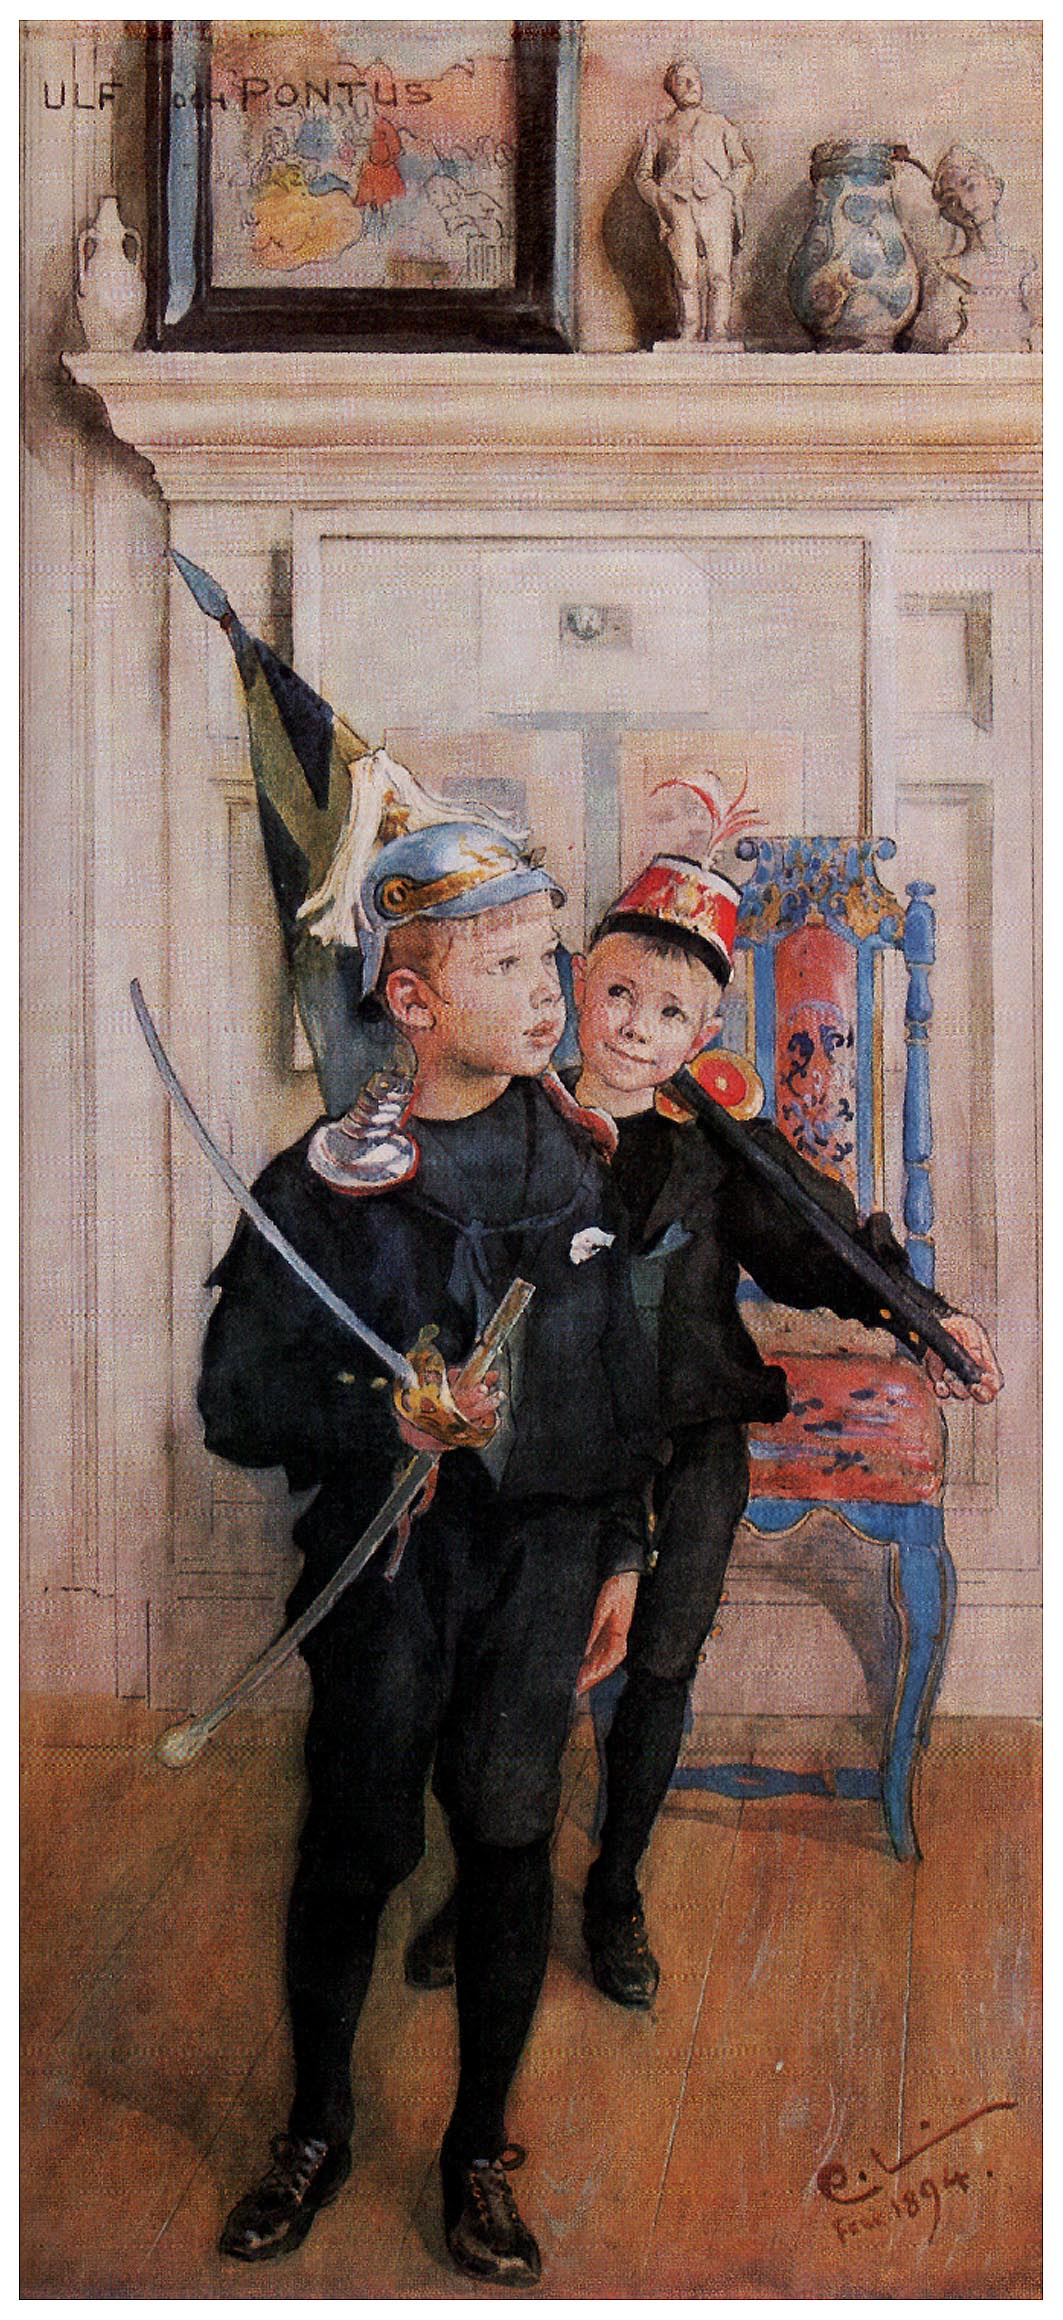 Carl Larsson. The sons of Ulf and Pontus